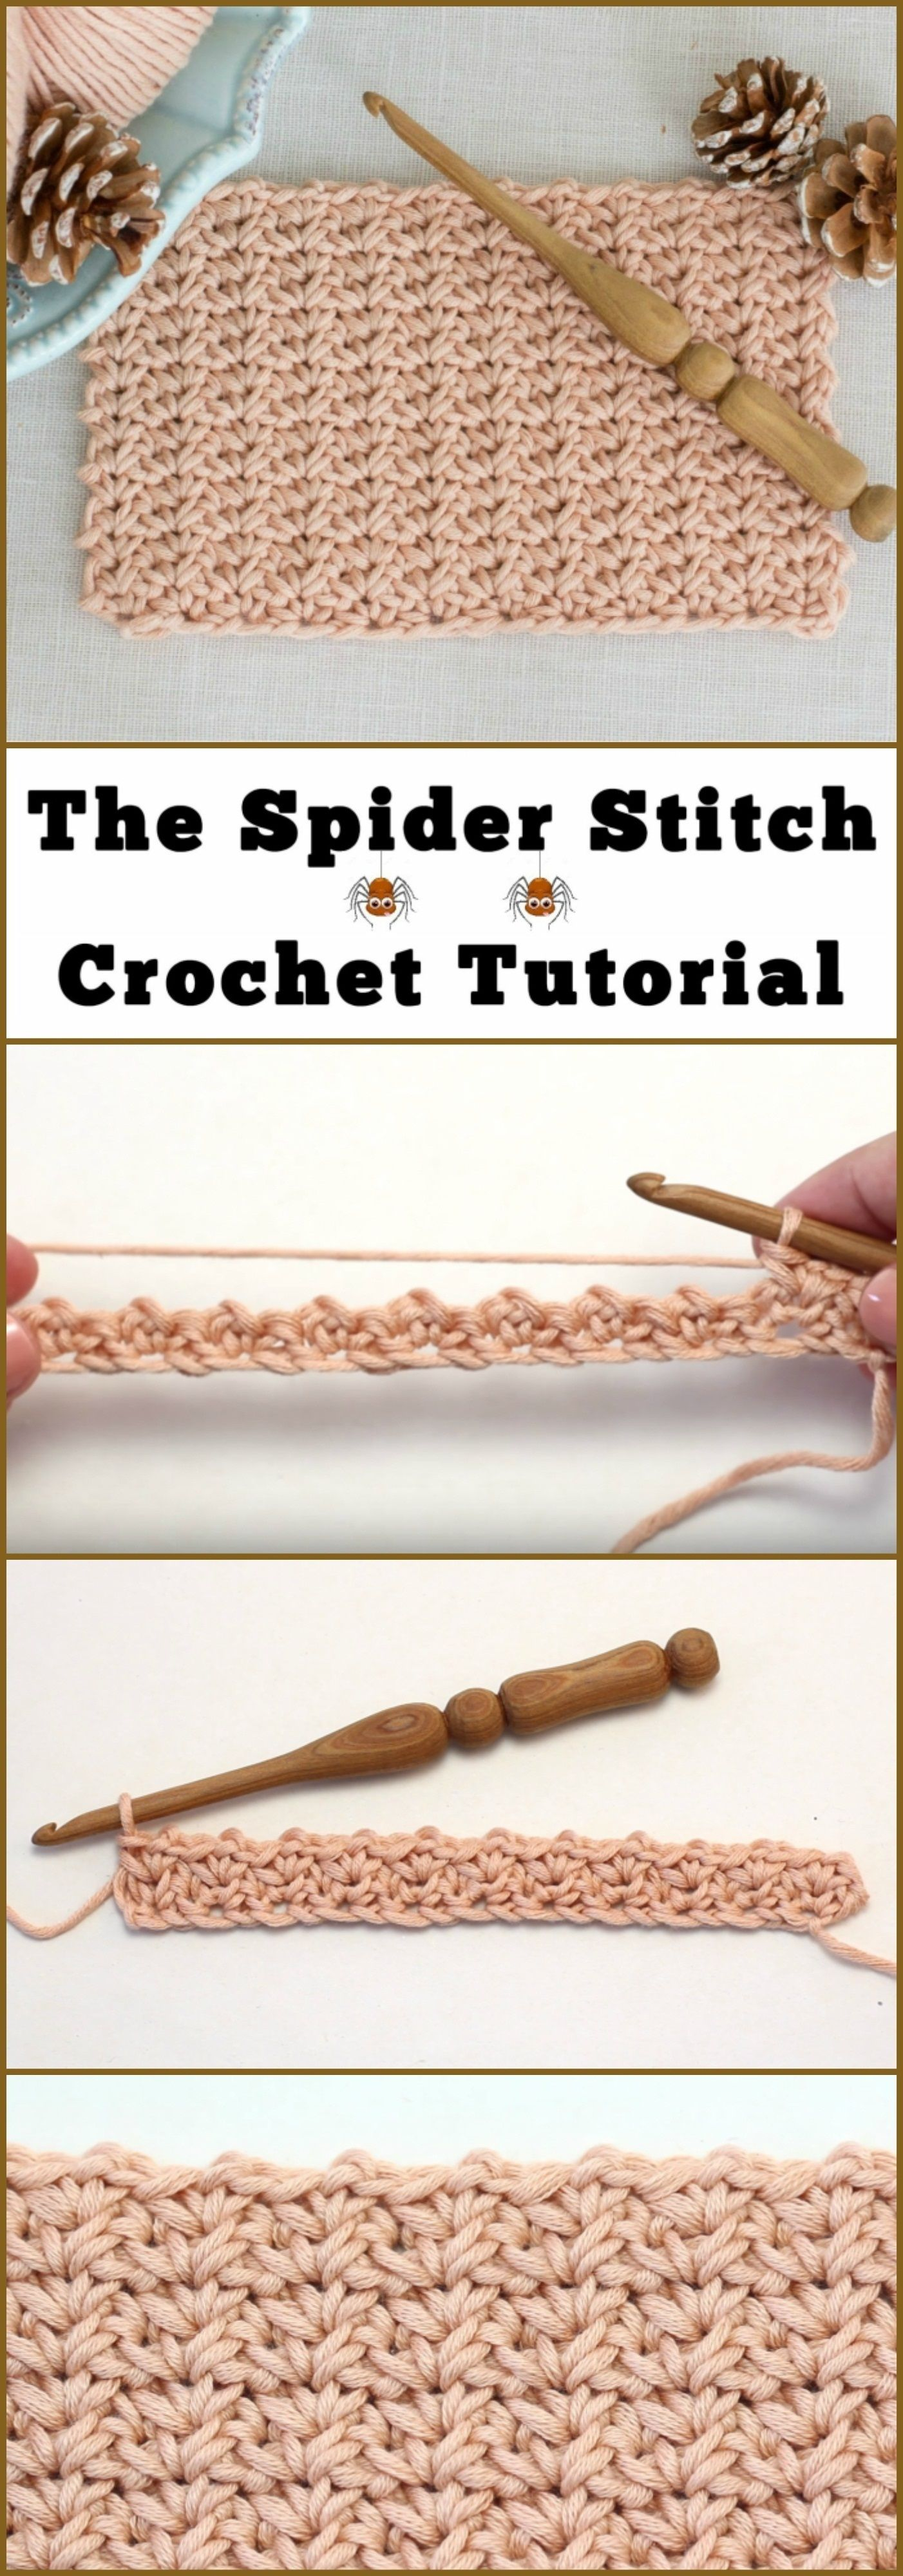 The Spider Stitch Crochet Tutorial | Ganchillo | Pinterest ...